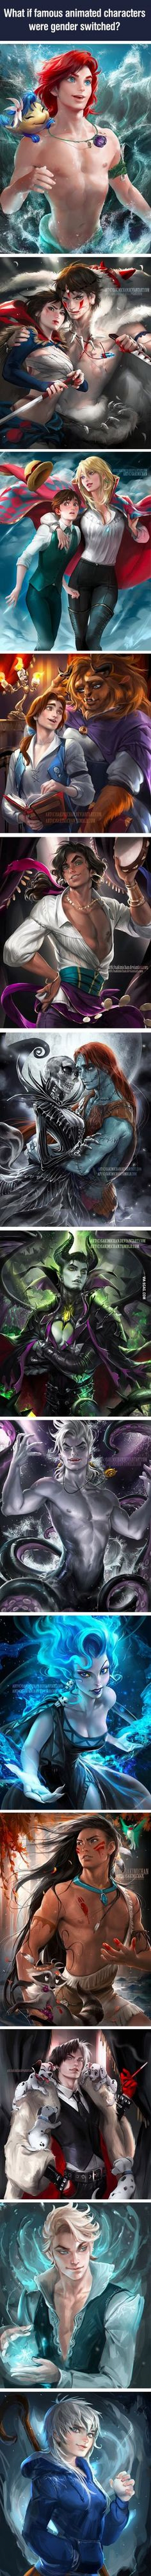 What if famous animated characters were gender switched? - 9GAG